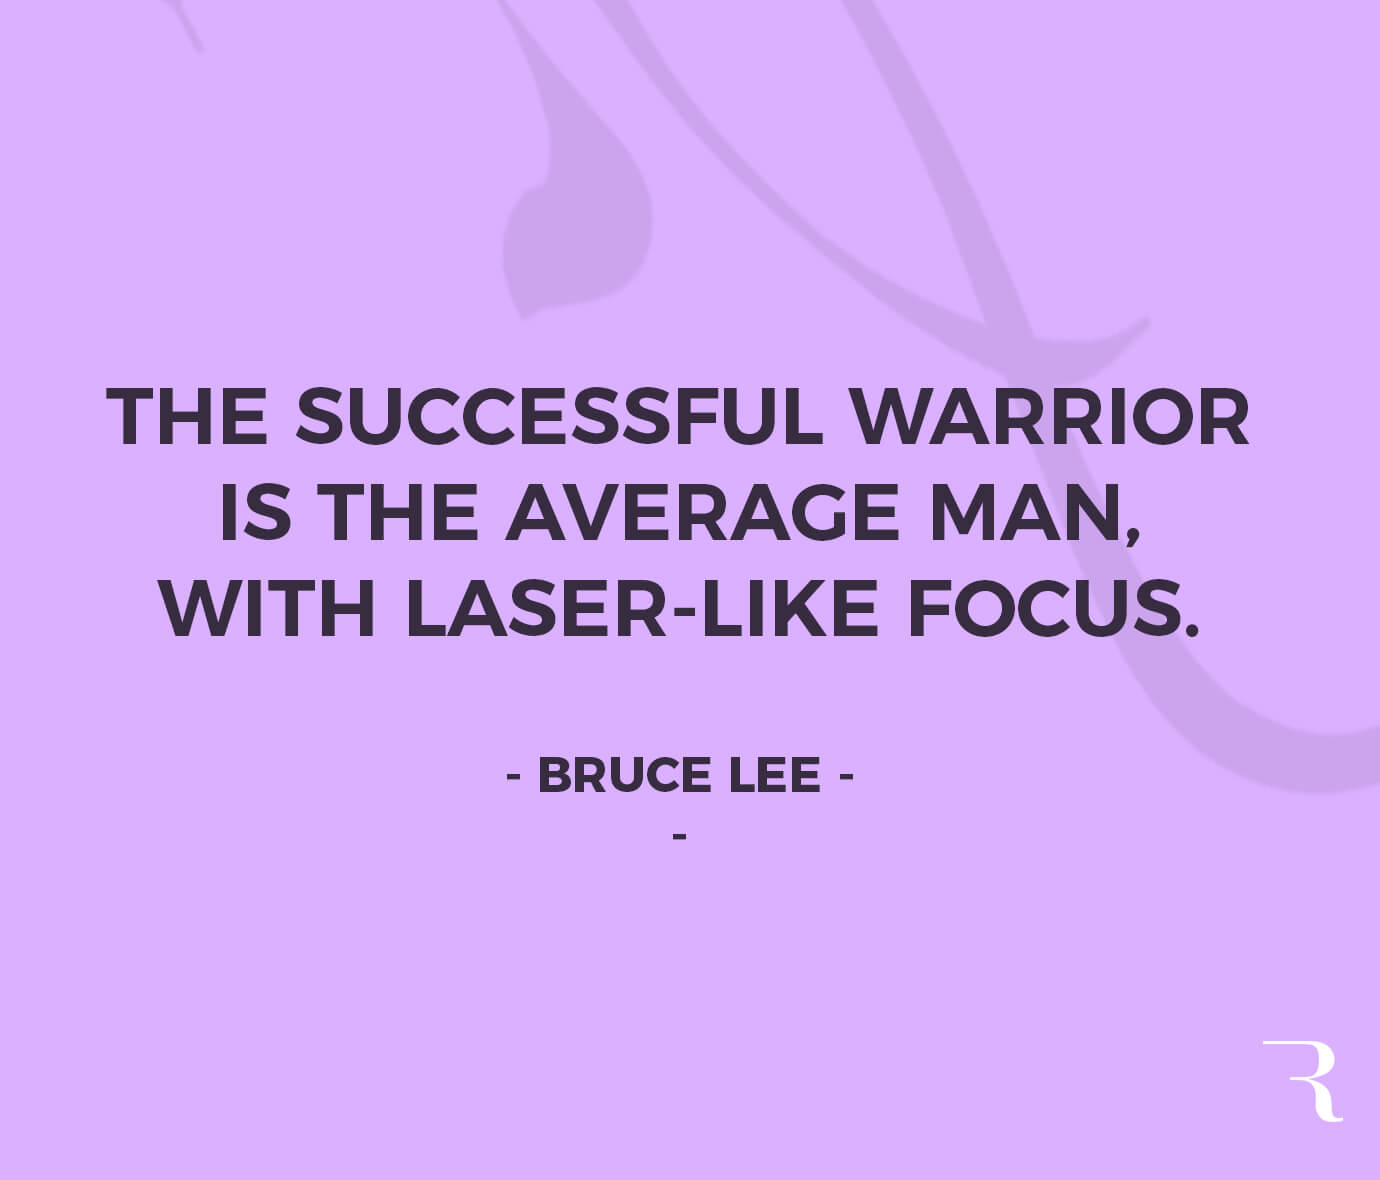 """Motivational Quotes: """"The successful warrior is the average man, with laser-like focus."""" 112 Motivational Quotes to Be a Better Entrepreneur"""